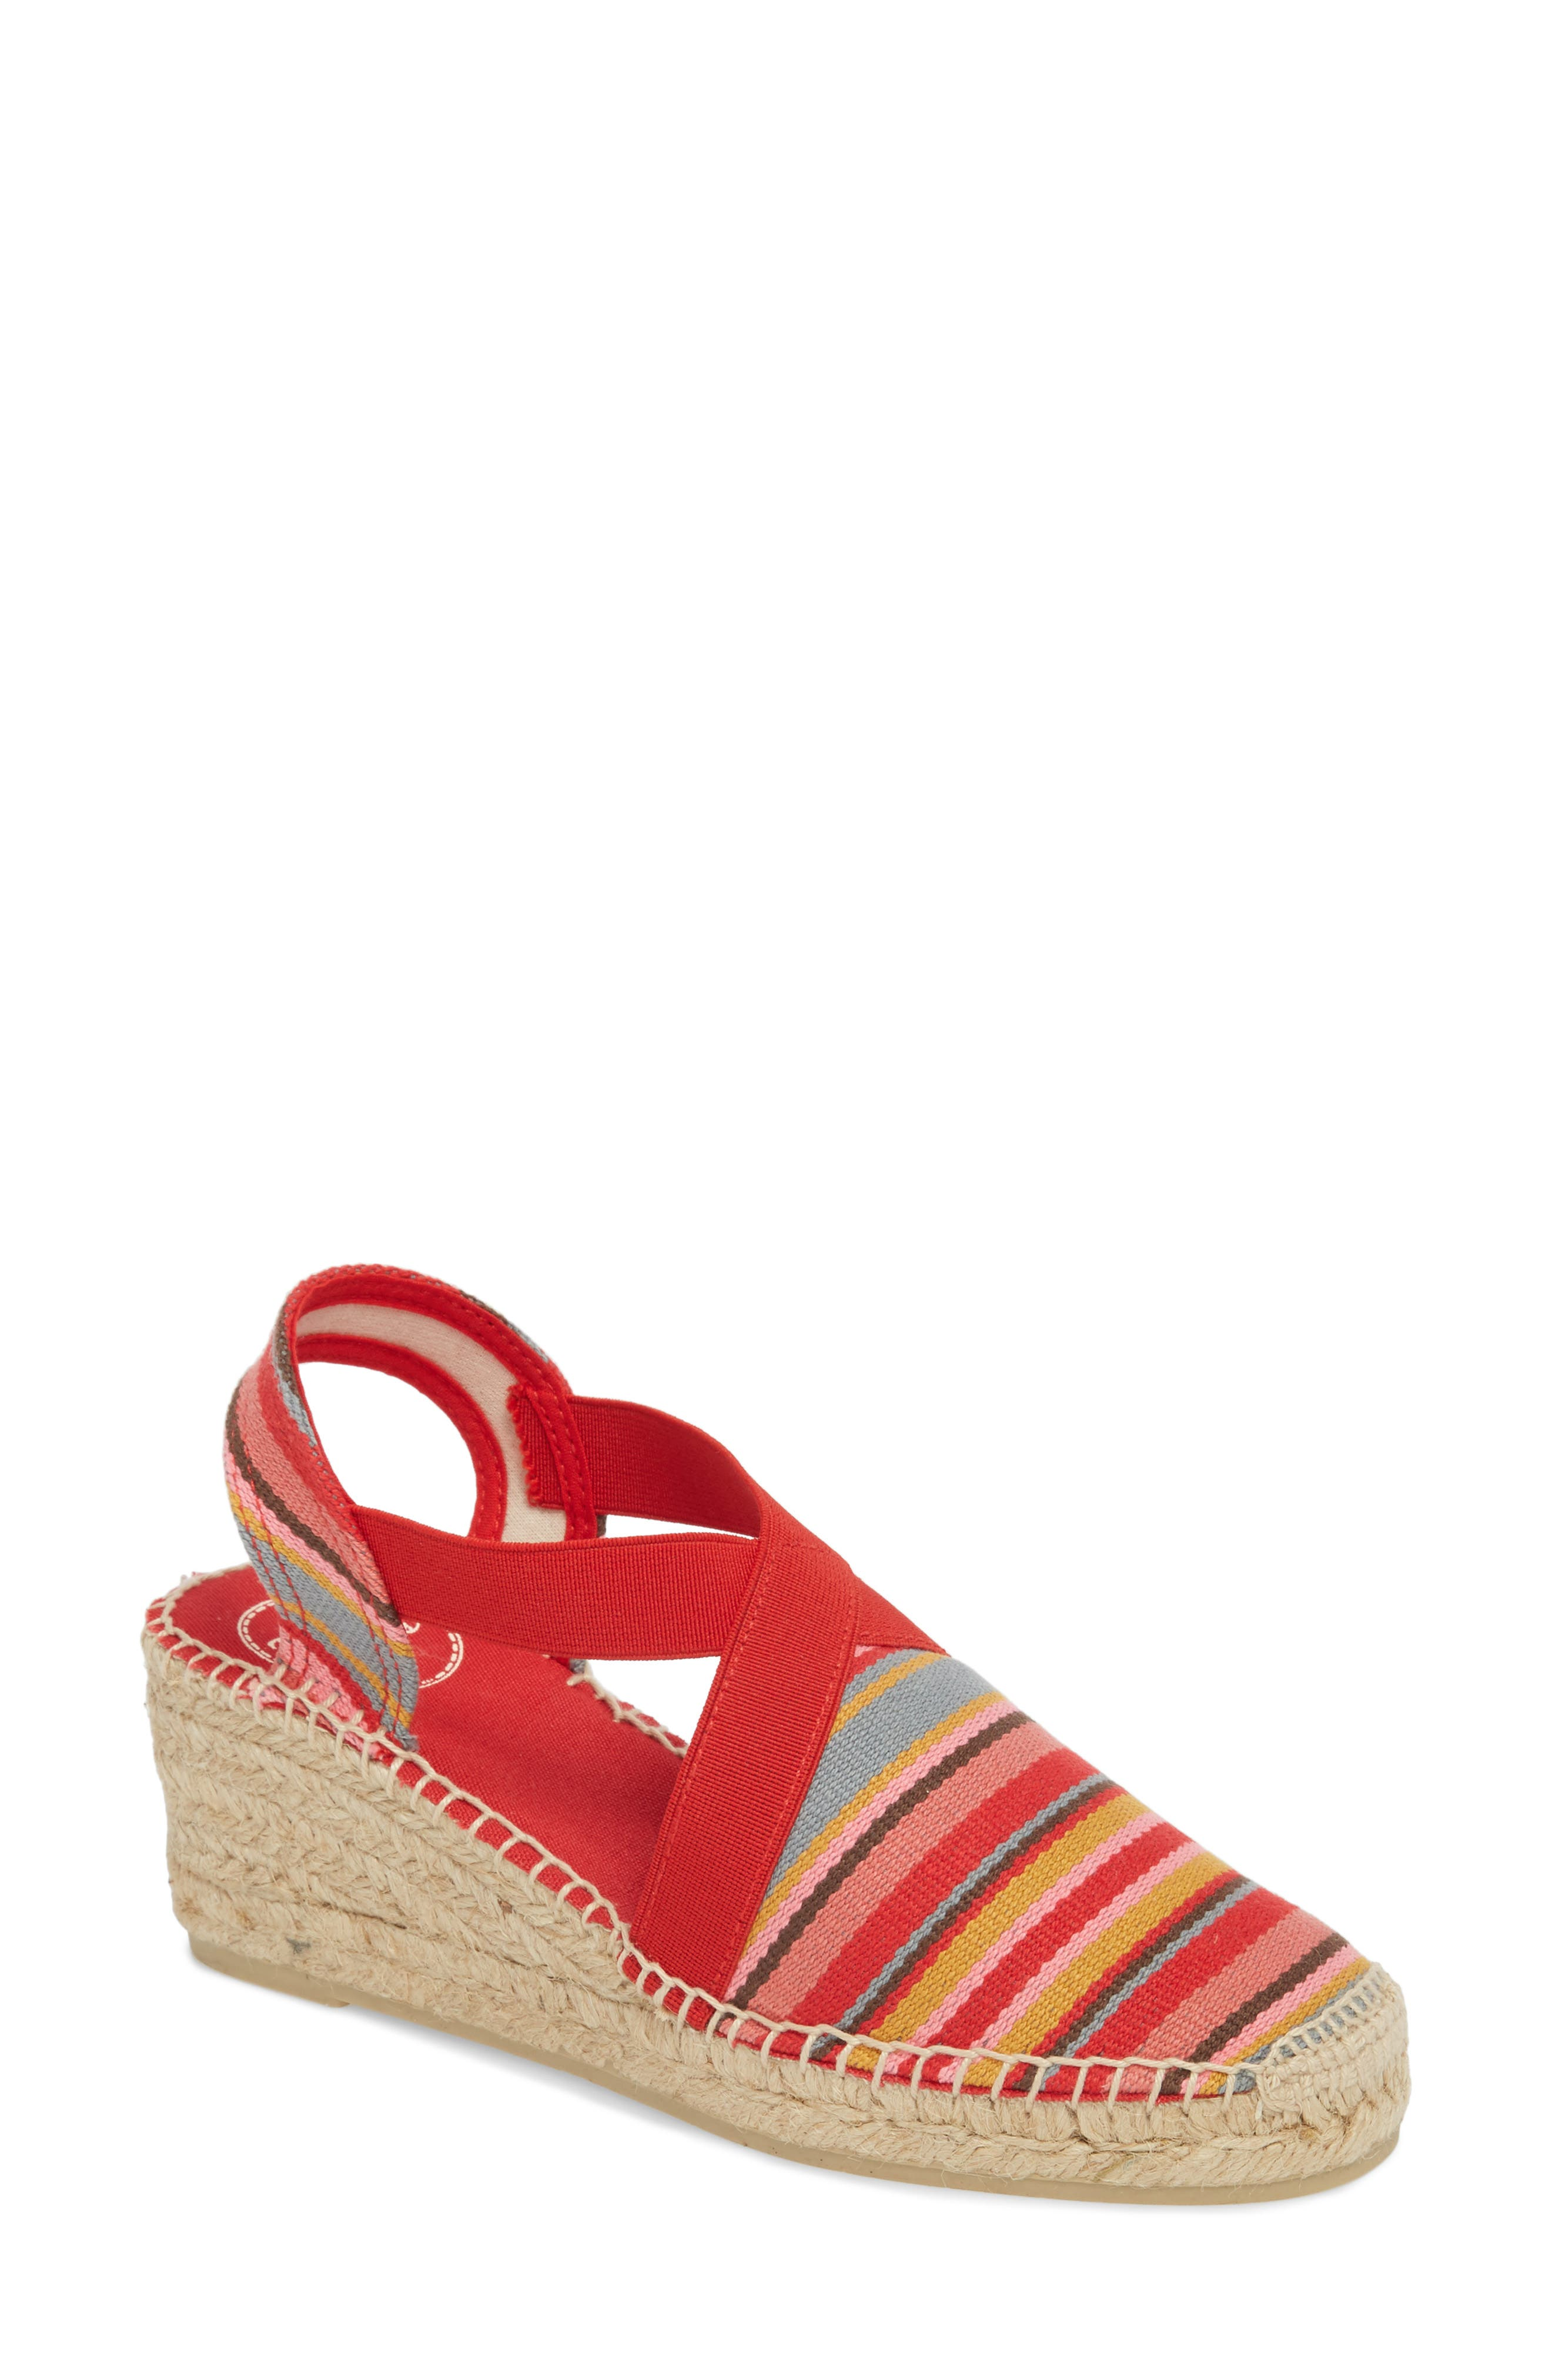 'Tarbes' Espadrille Wedge Sandal,                             Main thumbnail 1, color,                             Red Fabric